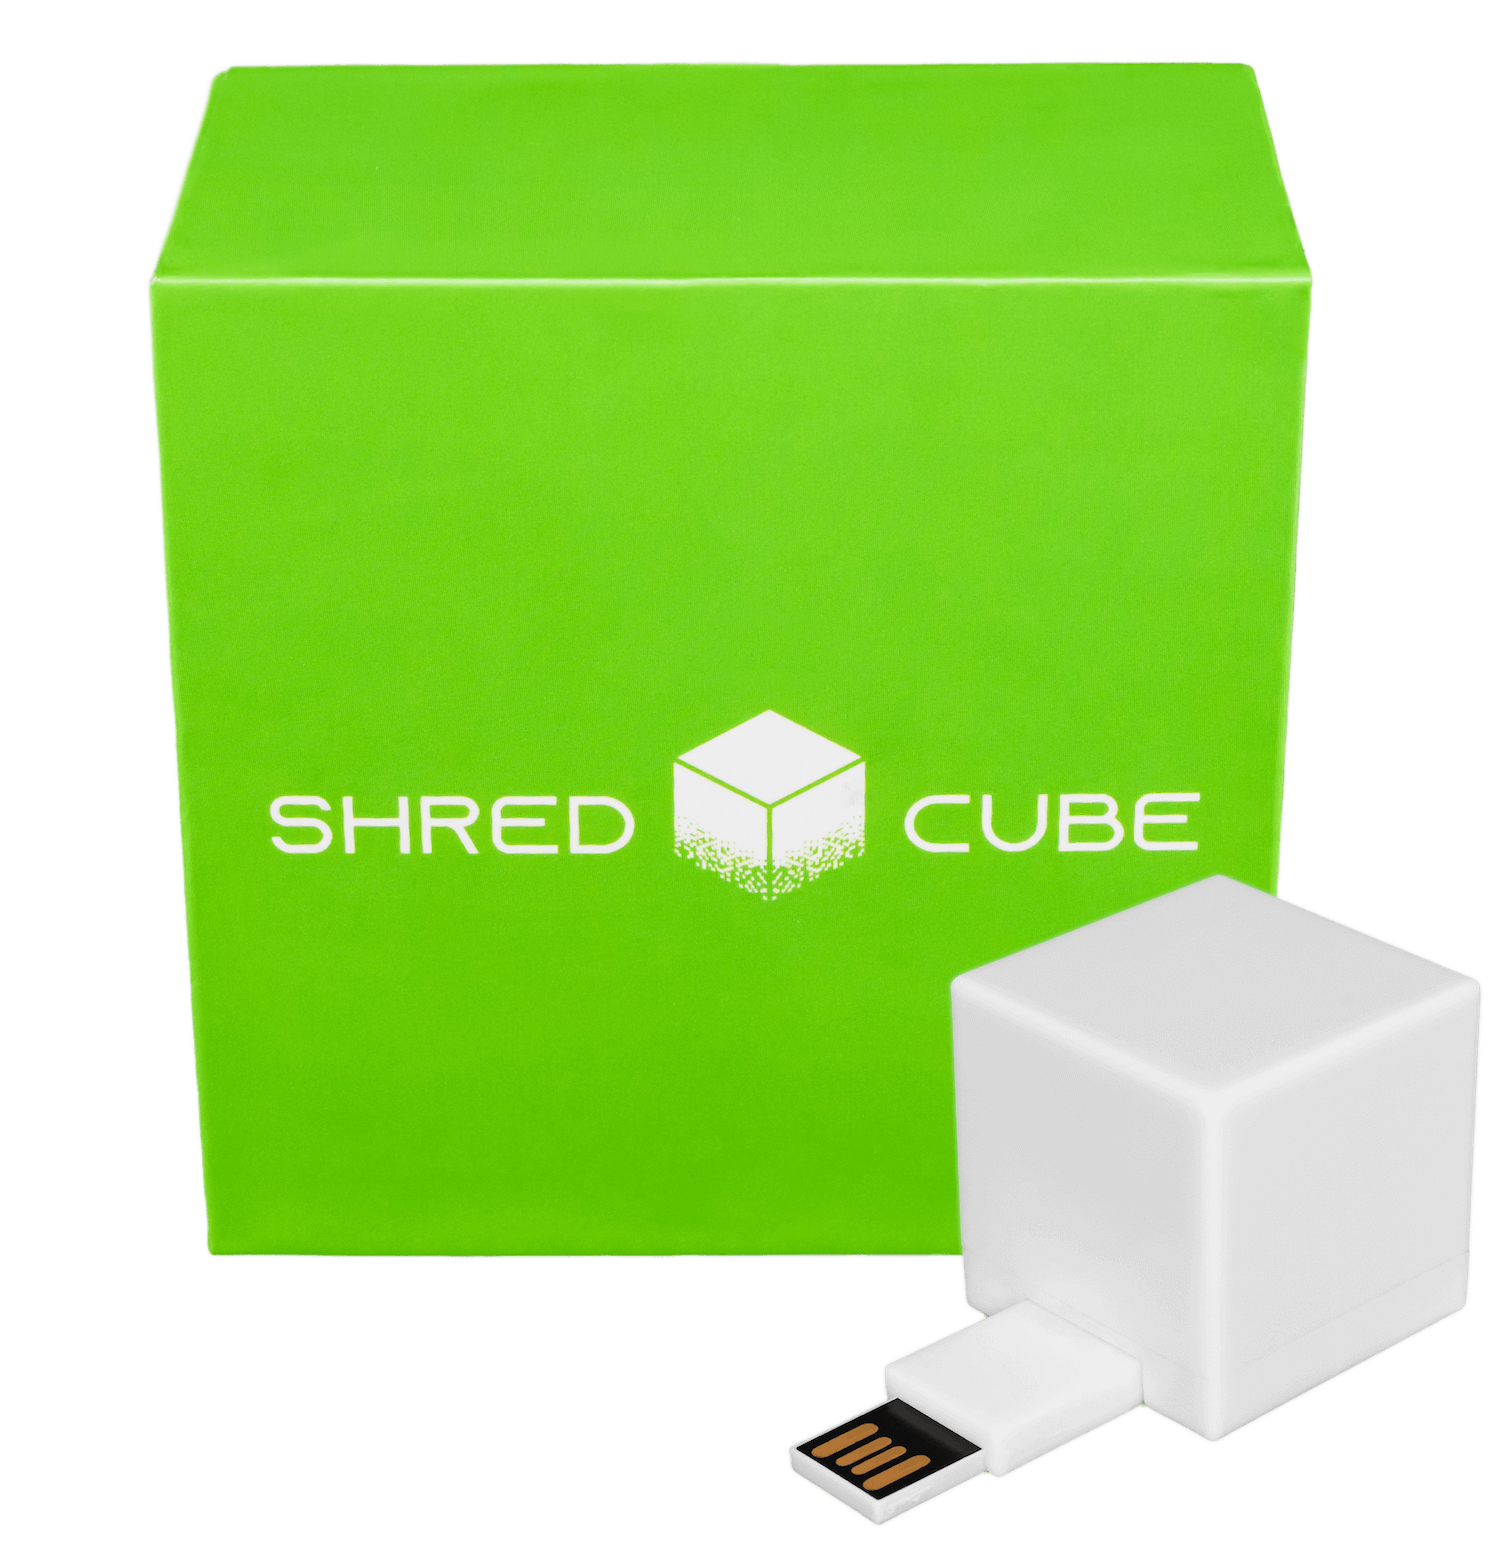 shred cube packaging illustration